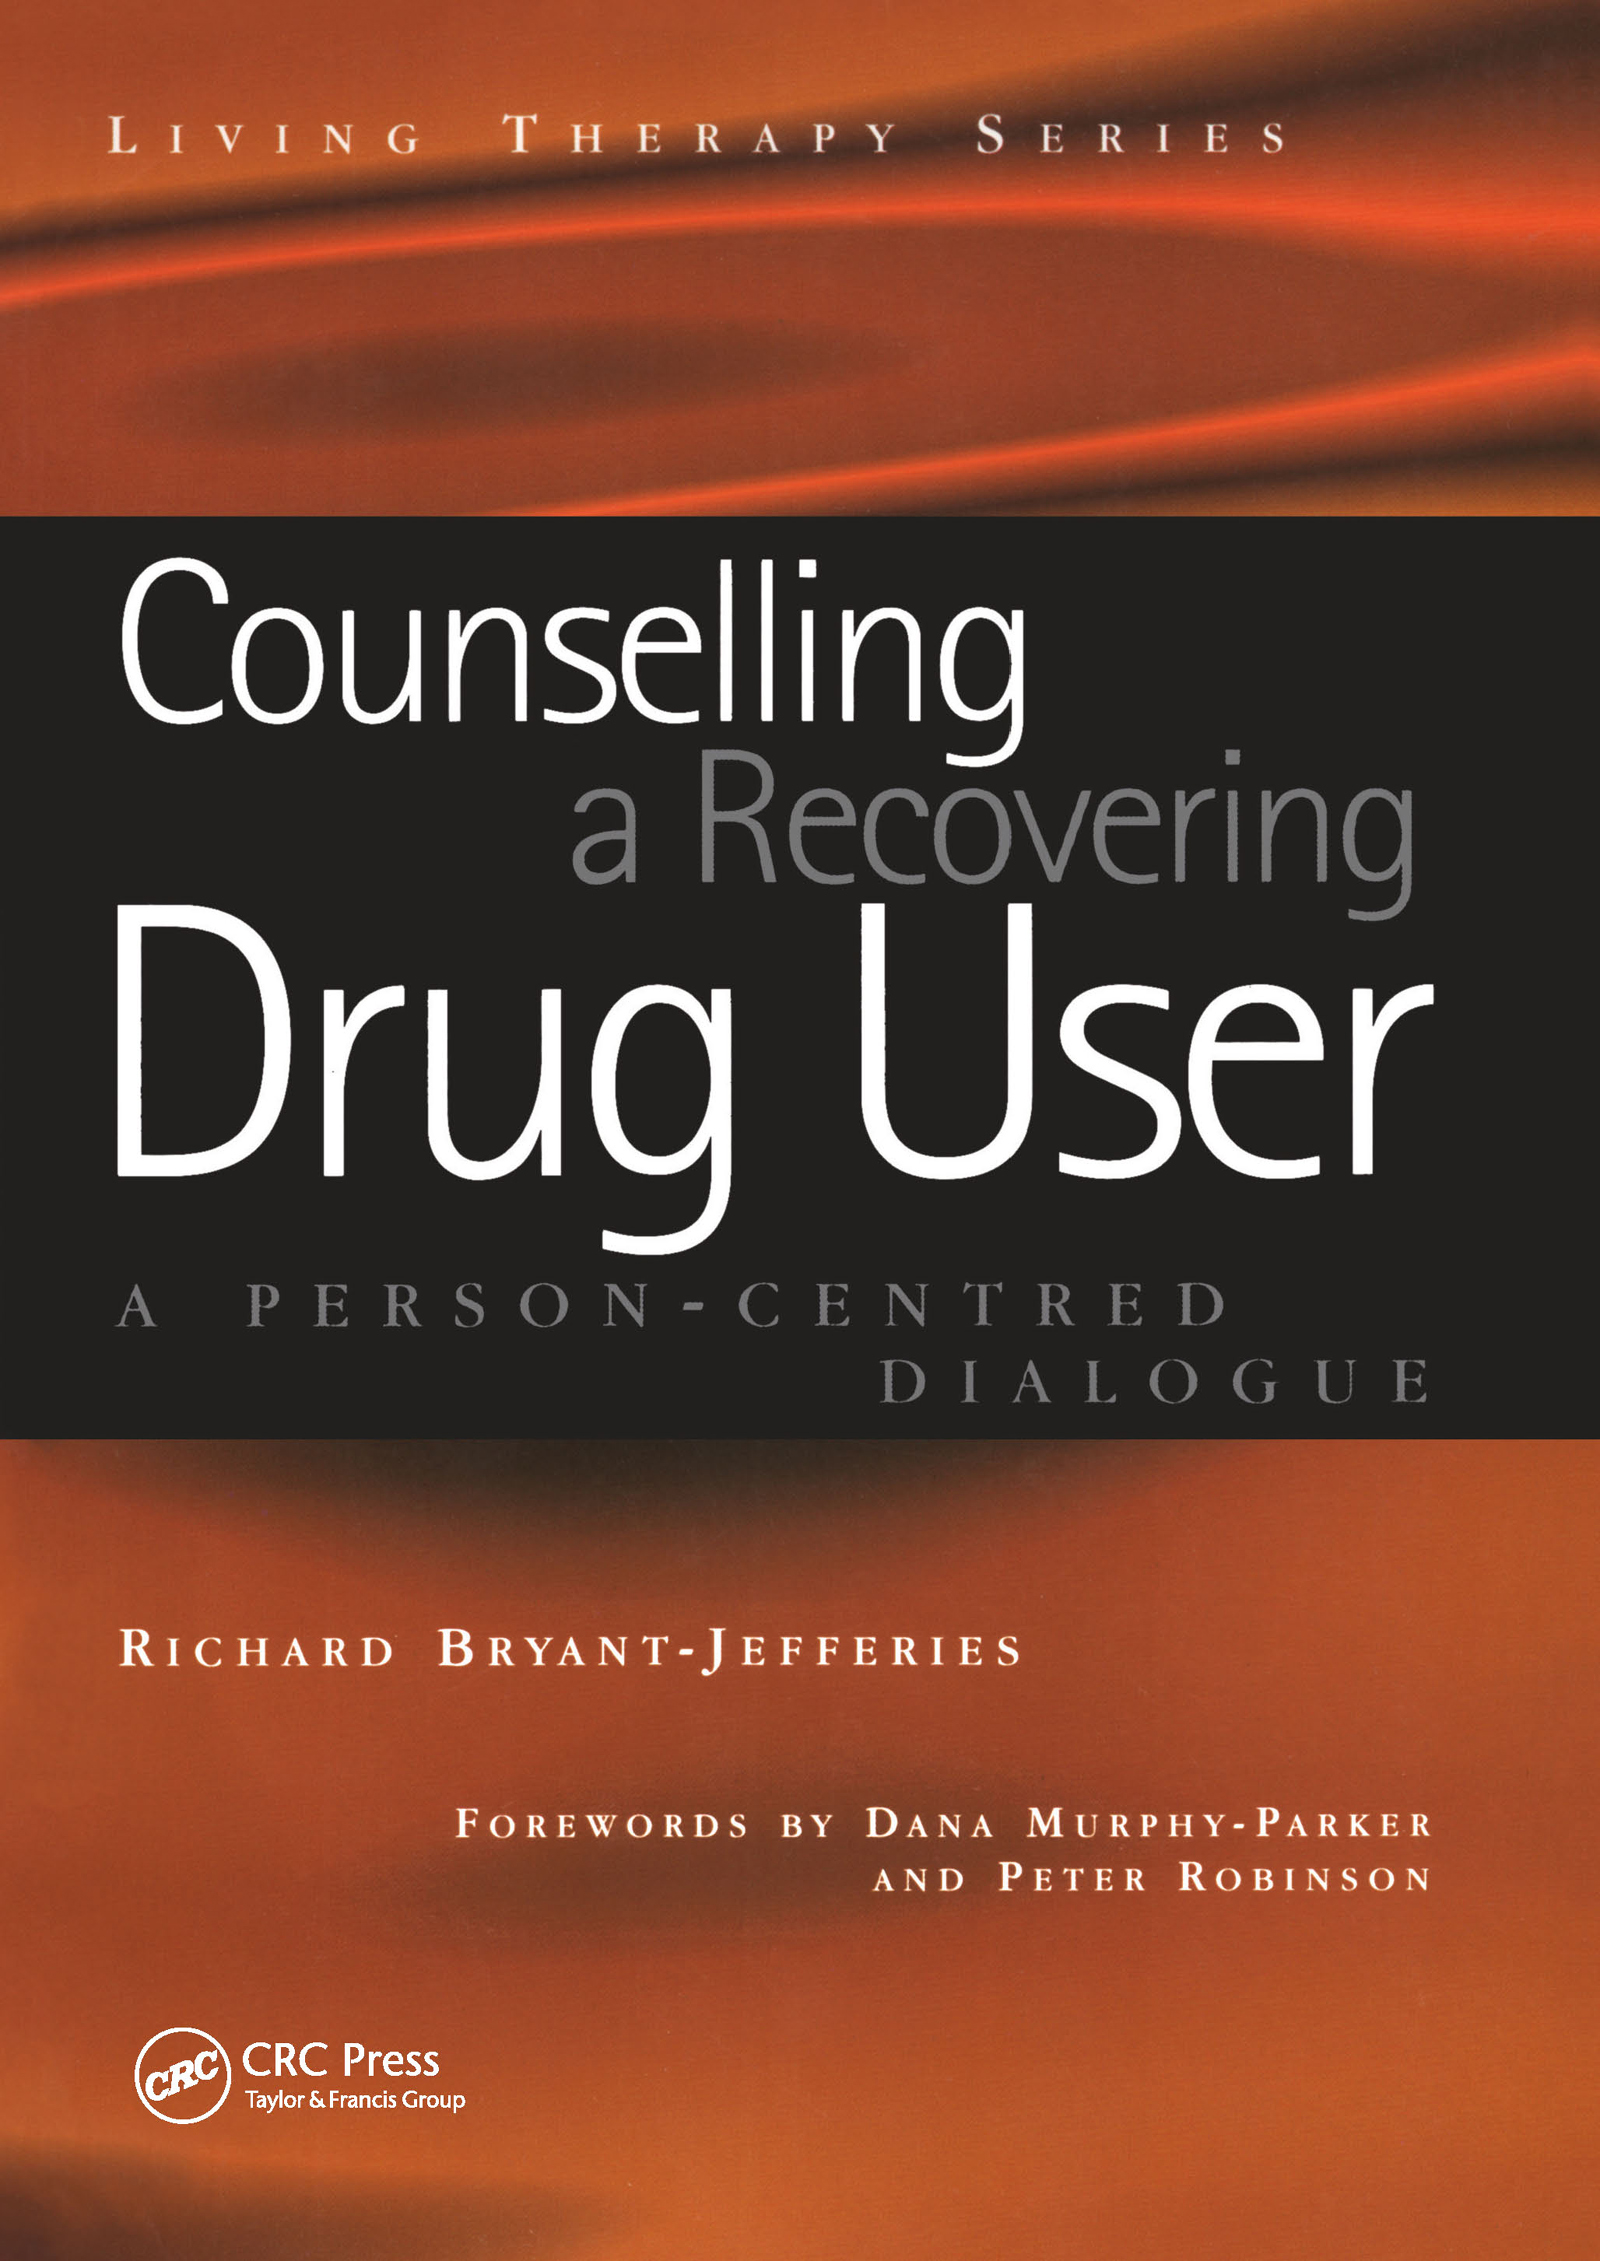 Counselling a Recovering Drug User: A Person-Centered Dialogue book cover